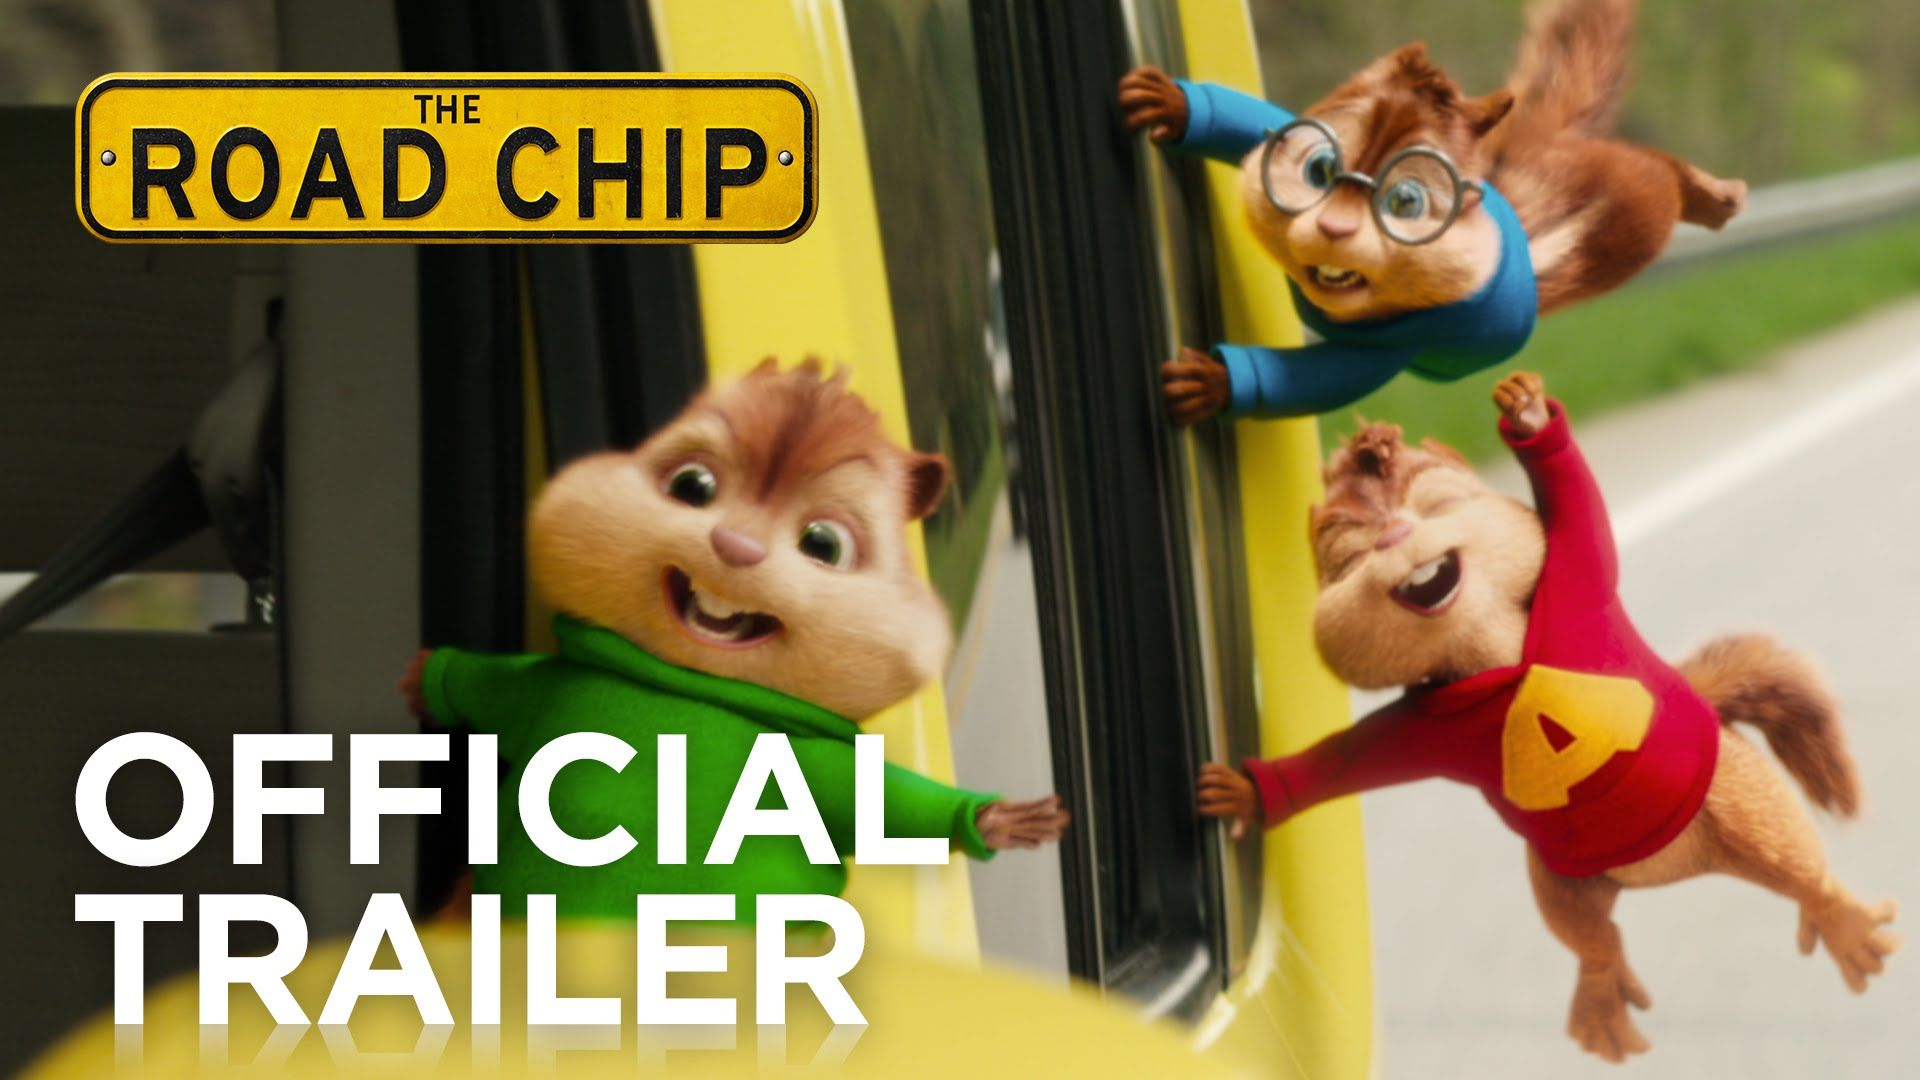 Alvin And The Chipmunks The Road Chip Official Trailer Hd Fox Family Chipmunks Movie Alvin And The Chipmunks Alvin And Chipmunks Movie